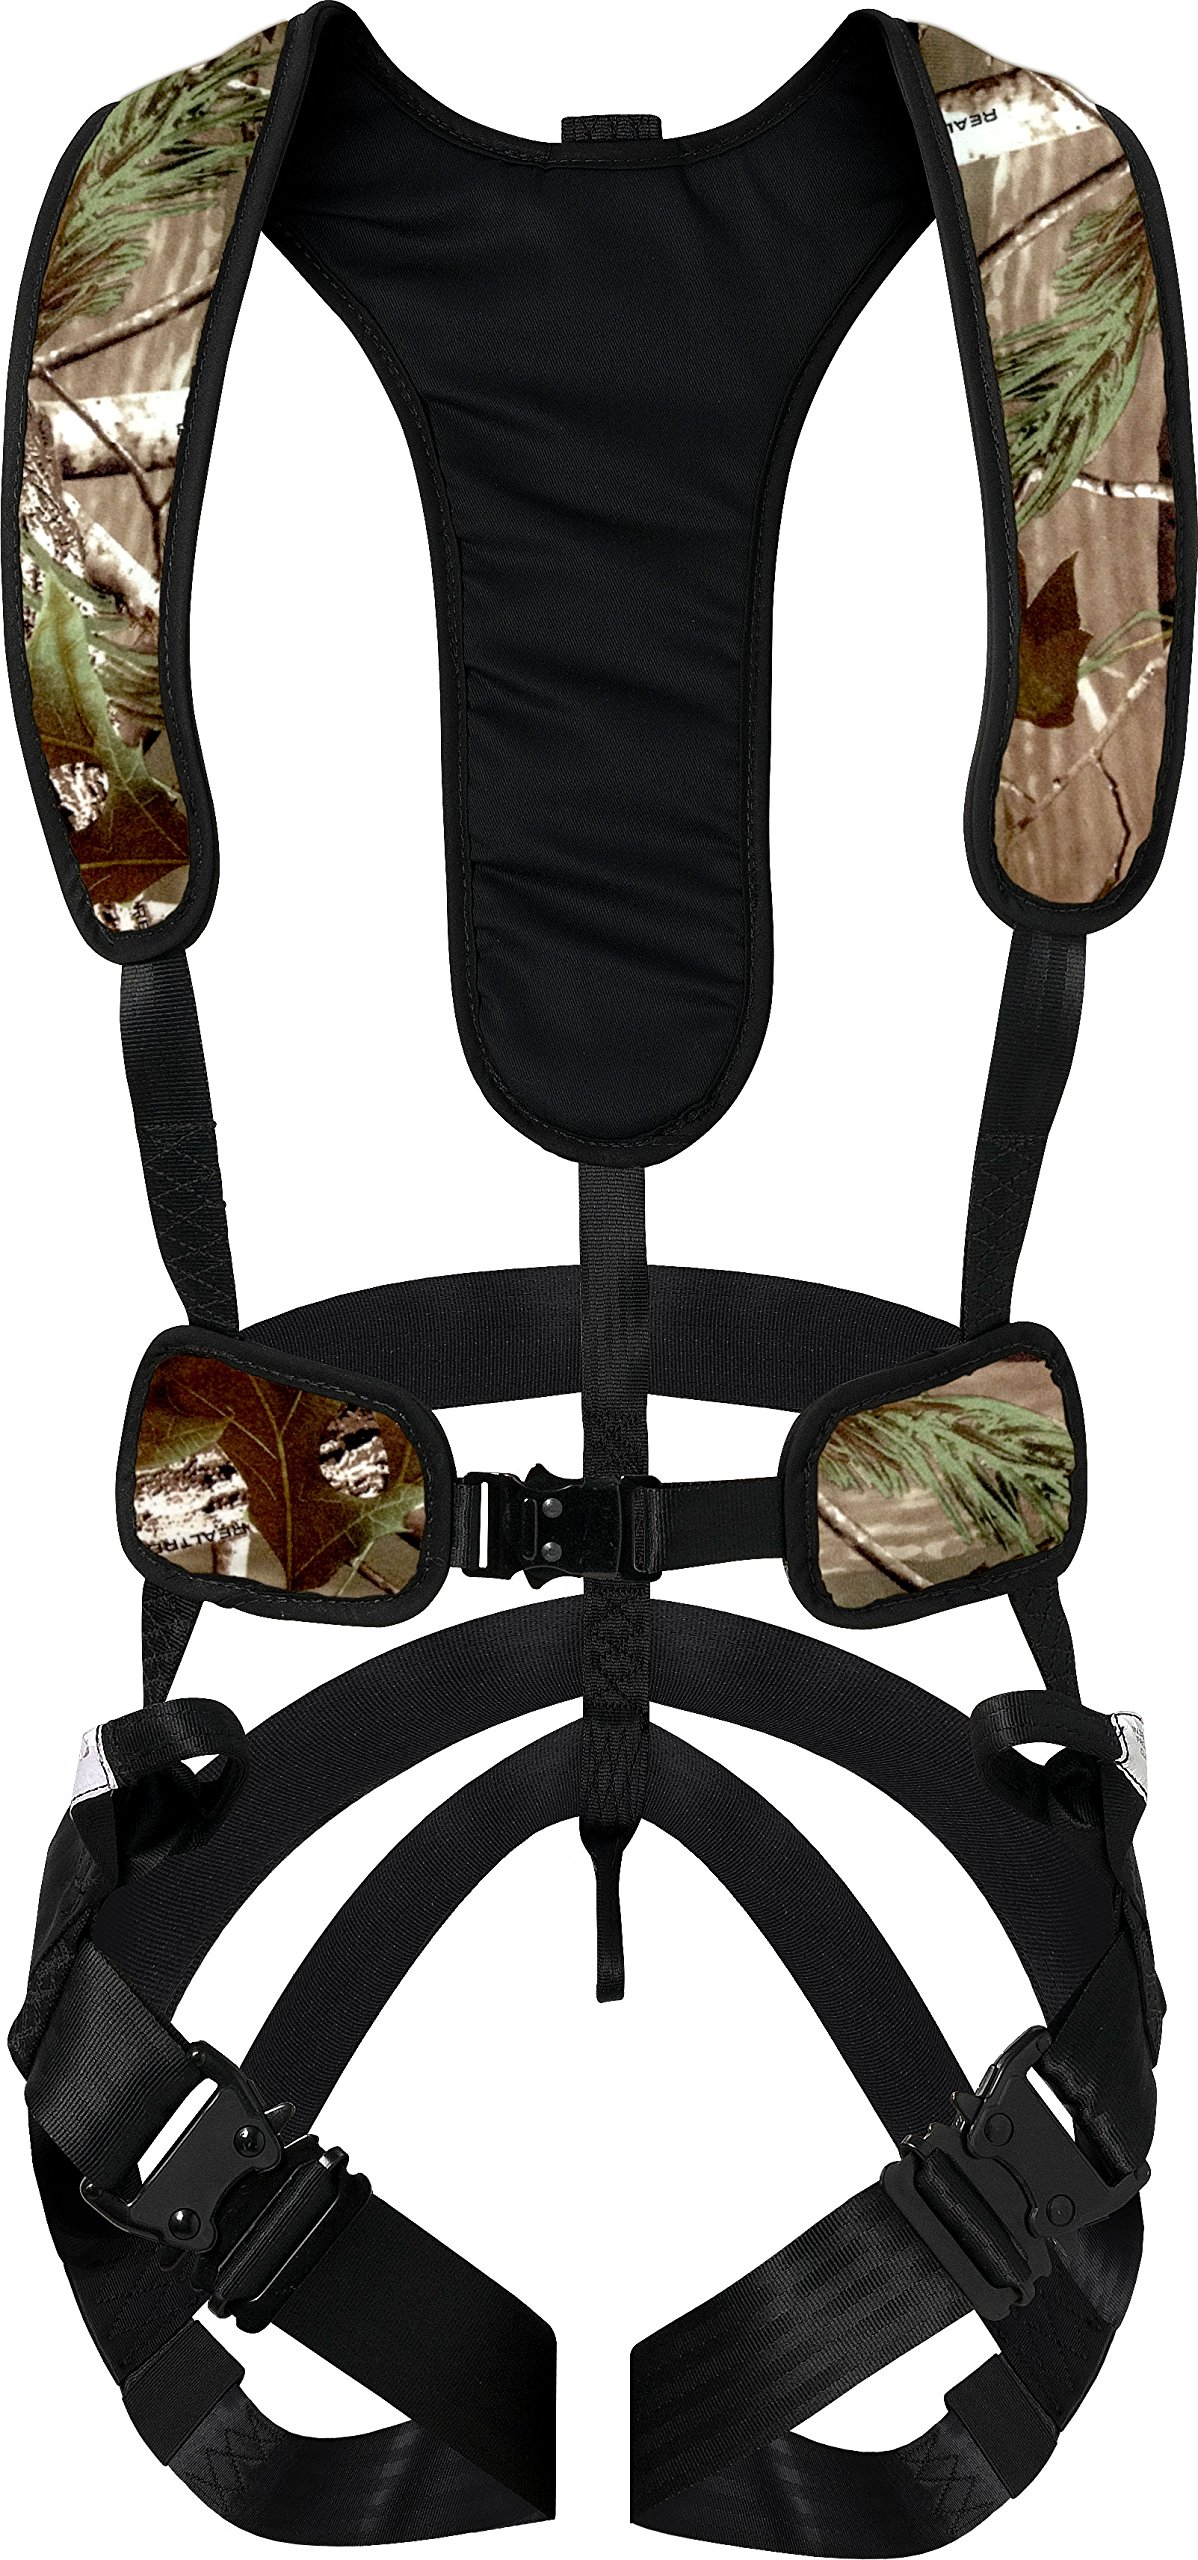 Hunter Safety System X-1 Bowhunter Treestand Safety Harness, Large/X-Large